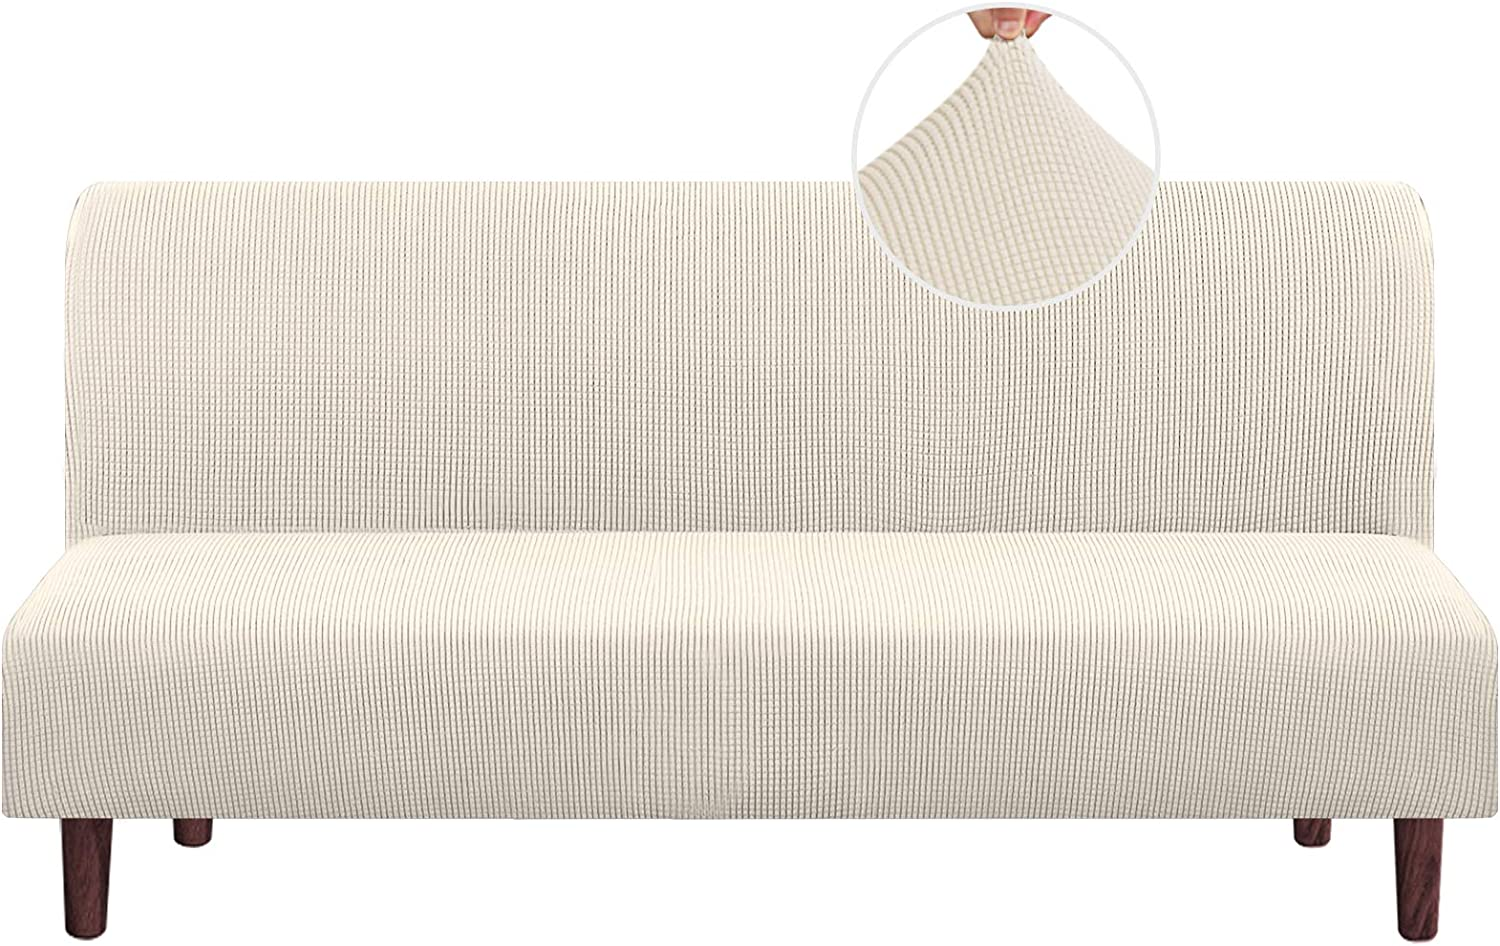 Stretch Armless Futon Cover Futon Slipcover Full Queen Size Futon Couch Cover Futon Sofa Cover Futon Bed Cover Furniture Protector with Elastic Bottom, Checked Pattern Jacquard (Futon, Biscotti Beige)